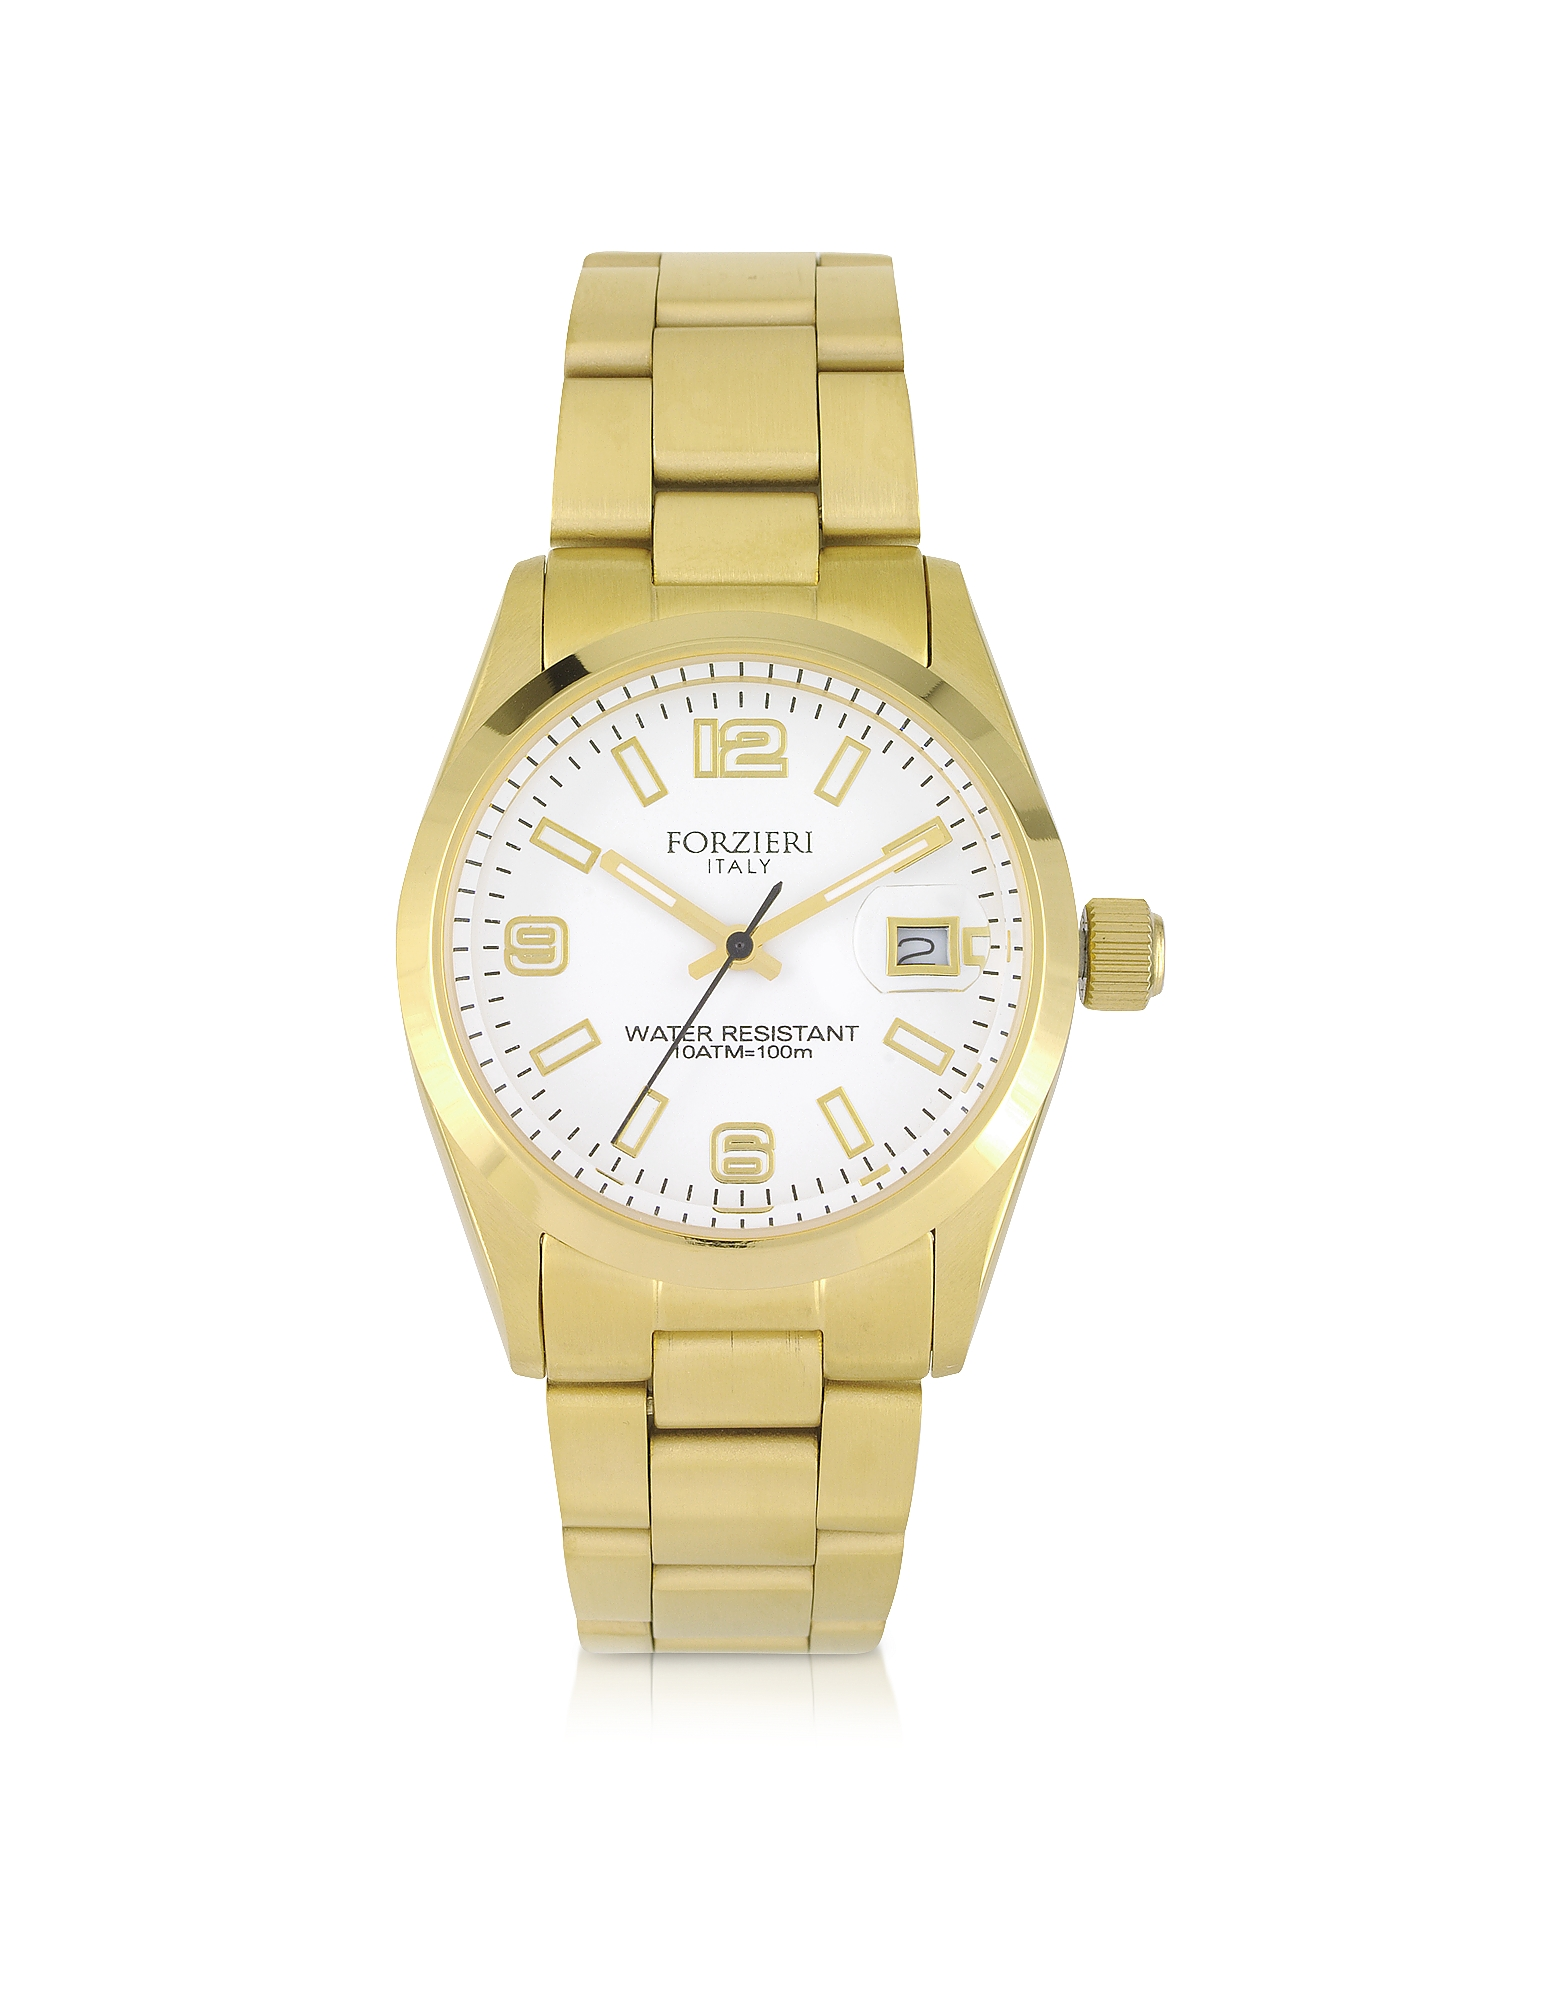 Forzieri Designer Women's Watches, Roger Mini Golden Stainless Steel Women's Watch